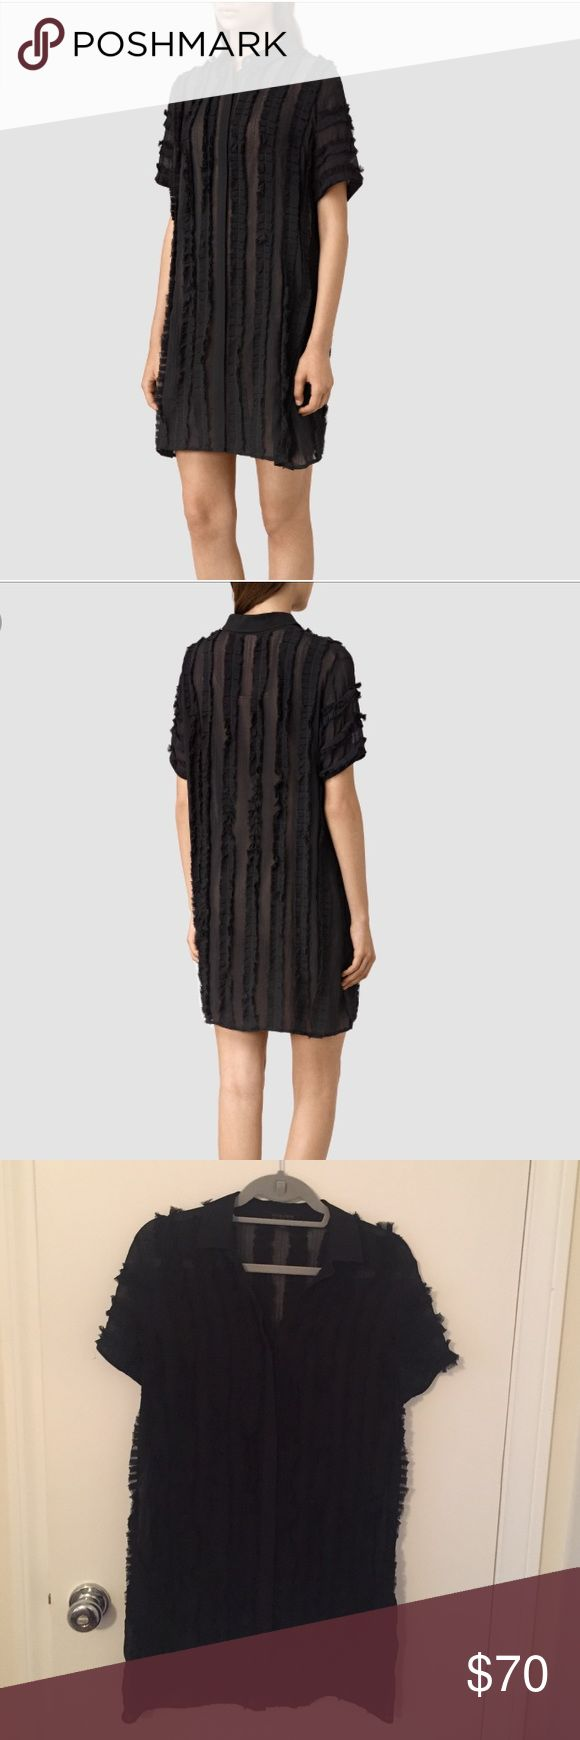 All Saints Emrys Ruffle Shirt Dress Black ruffled shirt dress. Do not have original slip but can provide a blk one. This is a size 0 but I am typically a 4-6 and this fit fine. Great condition, only worn twice All Saints Dresses Mini